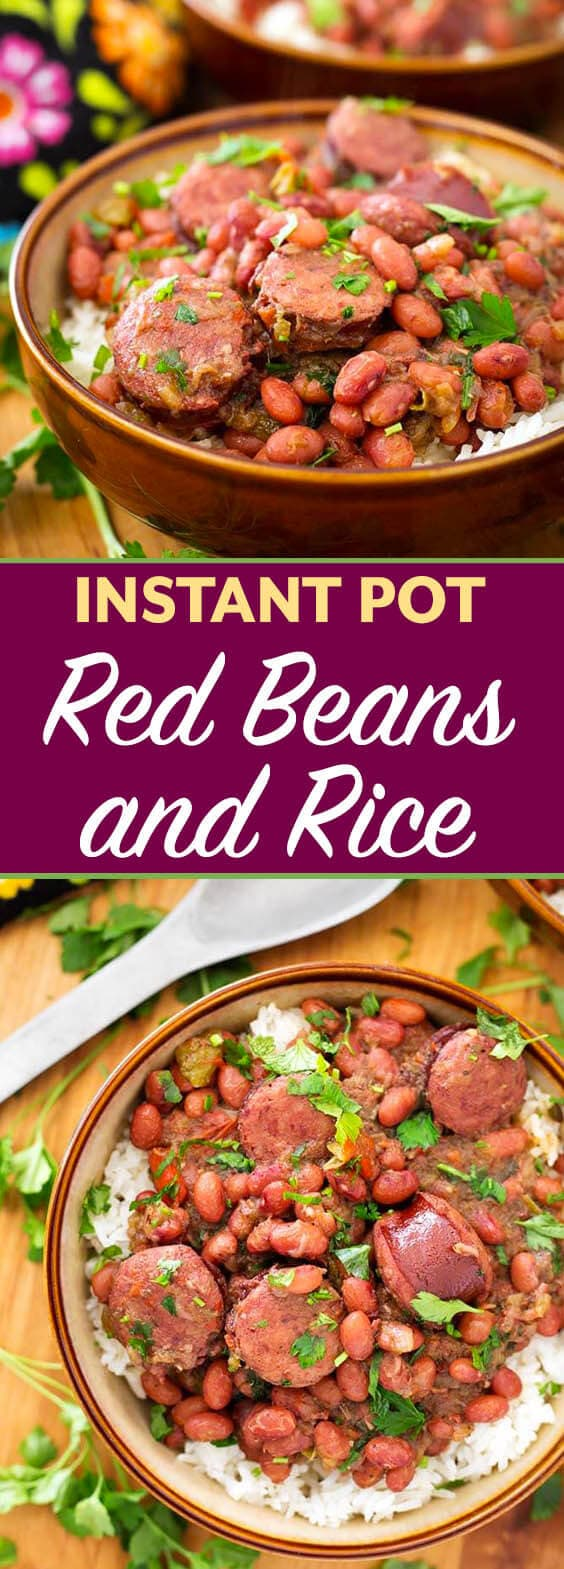 Two images of Instant Pot Red Beans and Rice in brown bowls with title